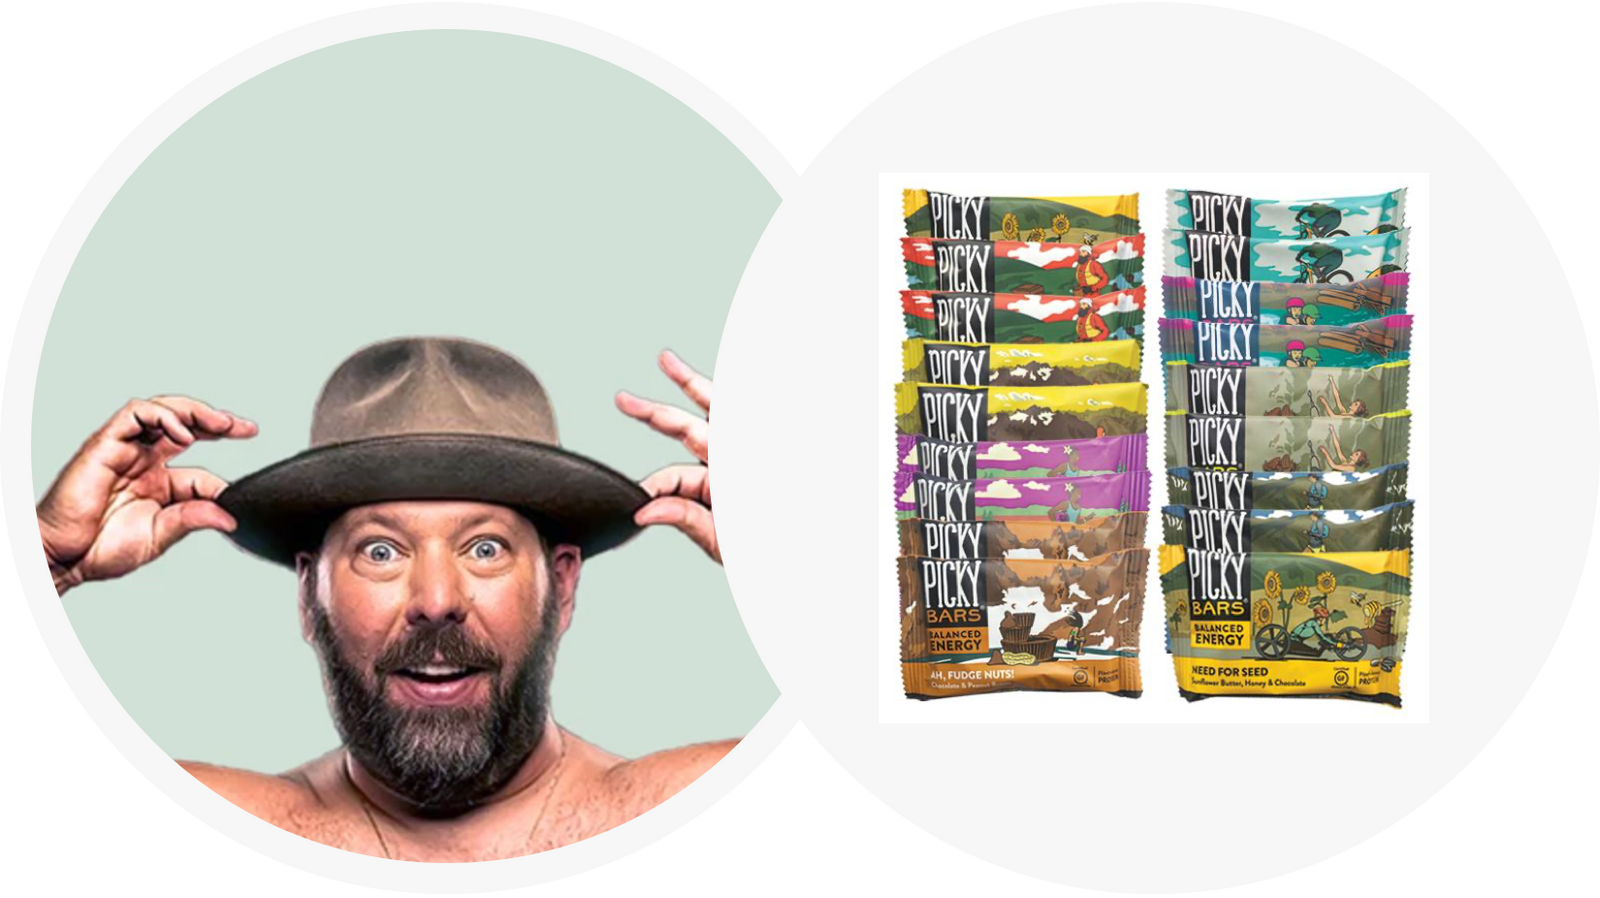 Bert Kreischer wearing a wide-brimmed hat with a surpised expression, and an array of Picky Bars